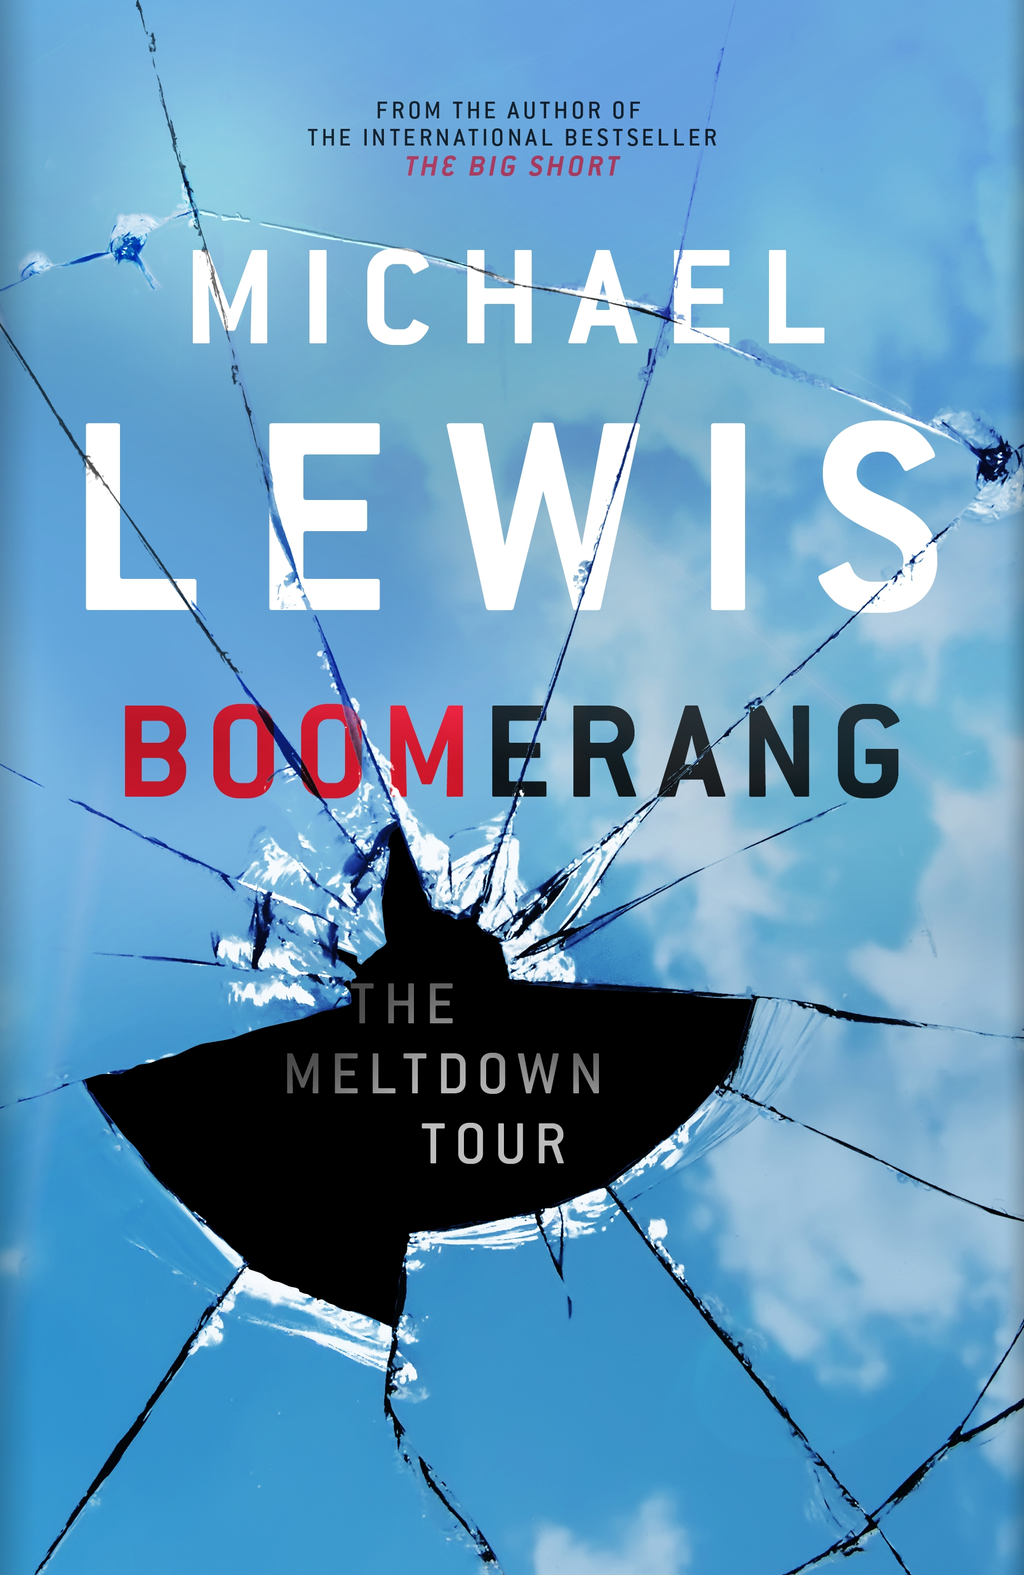 Boomerang: The Meltdown Tour The Meltdown Tour